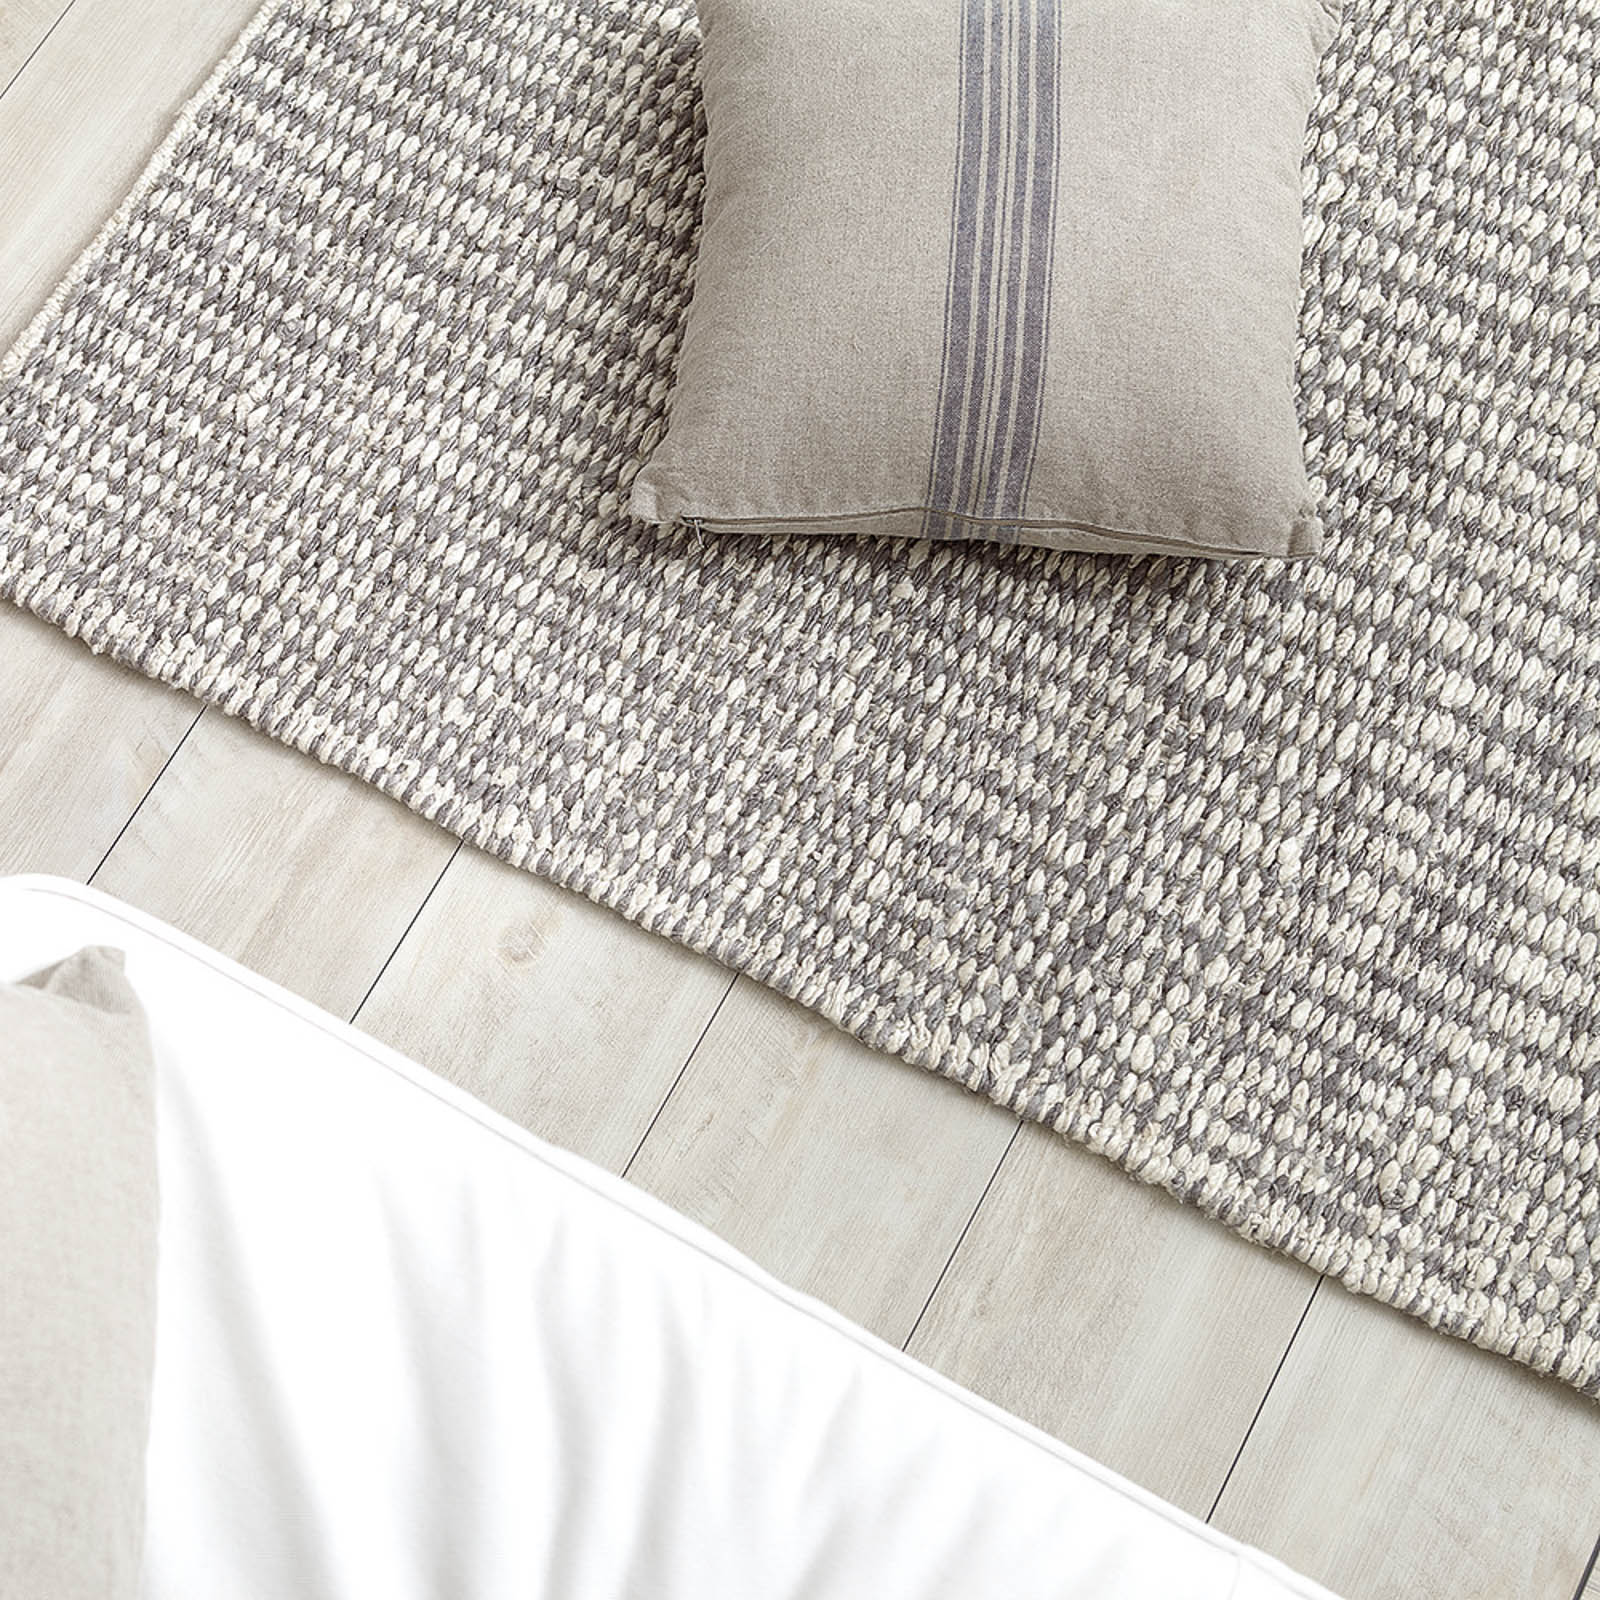 Stone Rugs 0017 01 By Down To Earth In Taupe And White